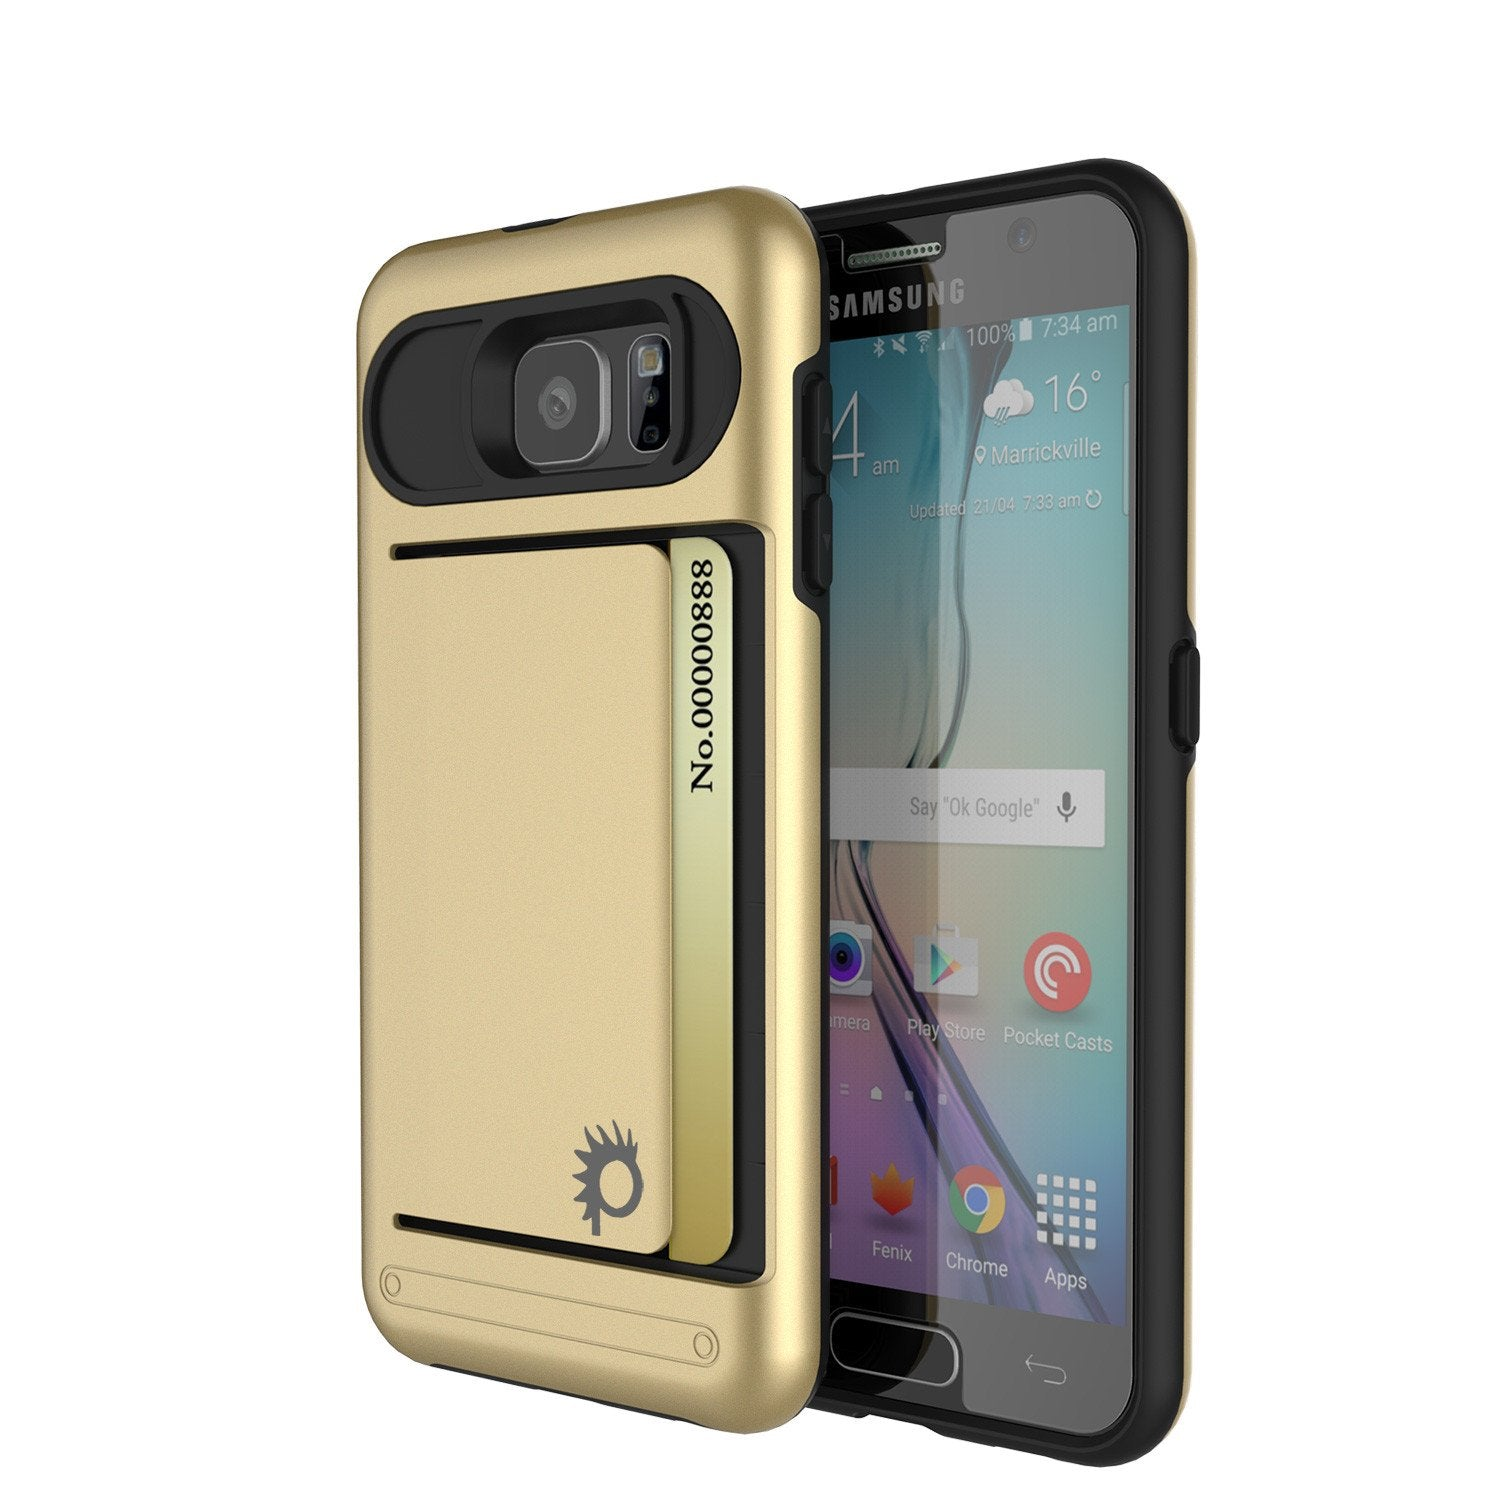 Galaxy s6 Case PunkCase CLUTCH Gold Series Slim Armor Soft Cover Case w/ Tempered Glass - PunkCase NZ